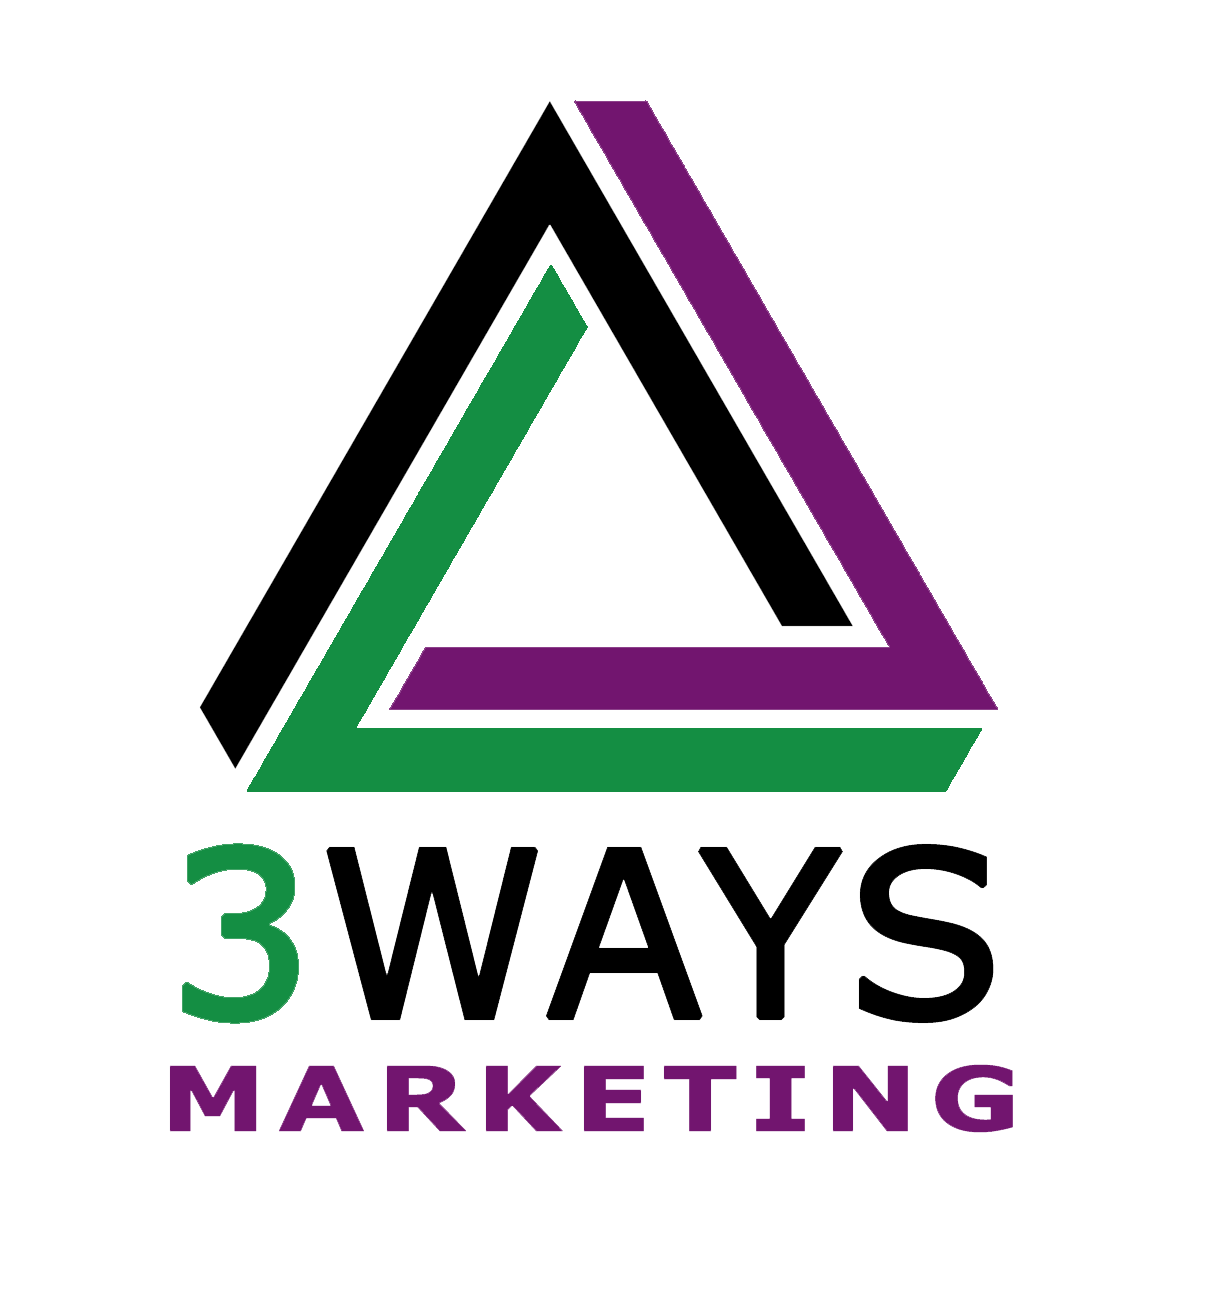 3 Ways Marketing Logo